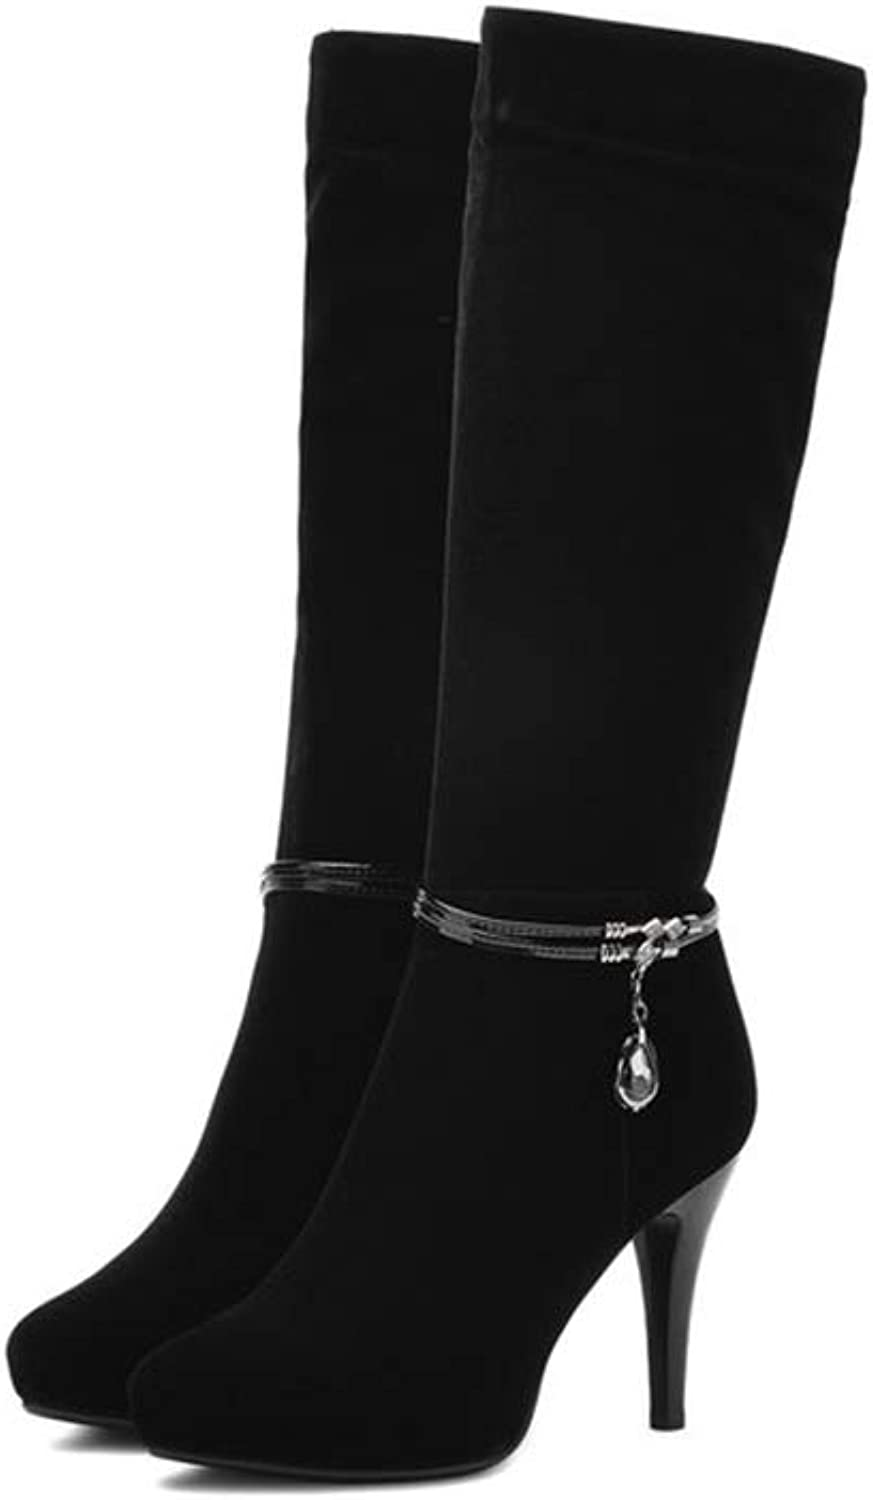 T-JULY Women Solid Elegant Boots Ladies Short Plush Knee-high Boots Thin High Heel Winter Fashion Boots